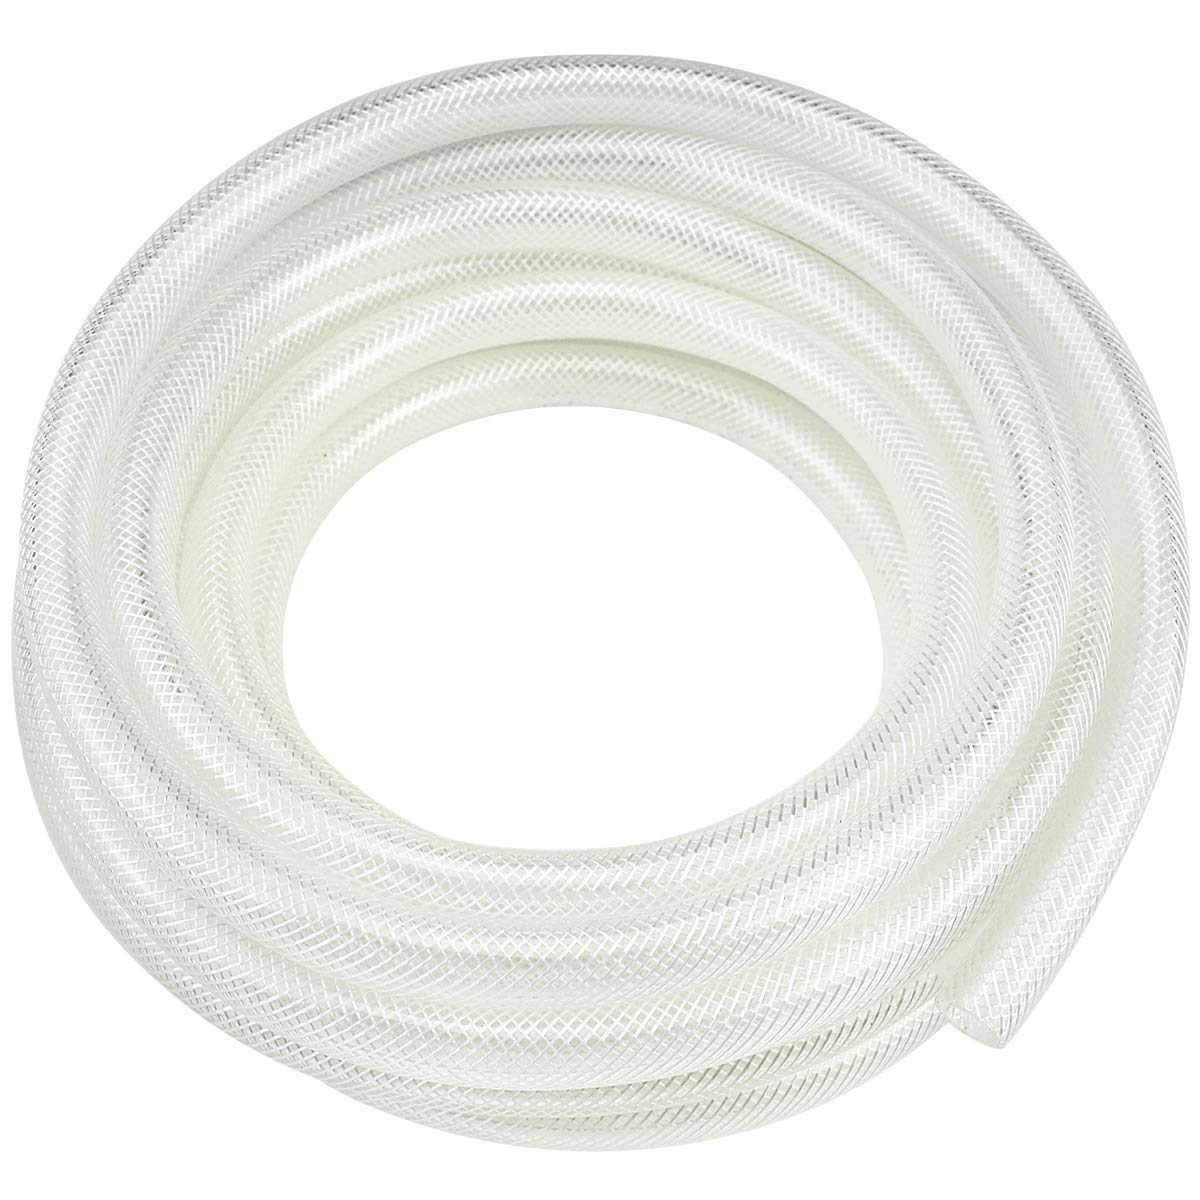 "1"" ID x 25 Ft High Pressure Braided Clear PVC Vinyl Tubing Flexible Vinyl Tube, Heavy Duty Reinforced Vinyl Hose Tubing, BPA Free and Non Toxic"